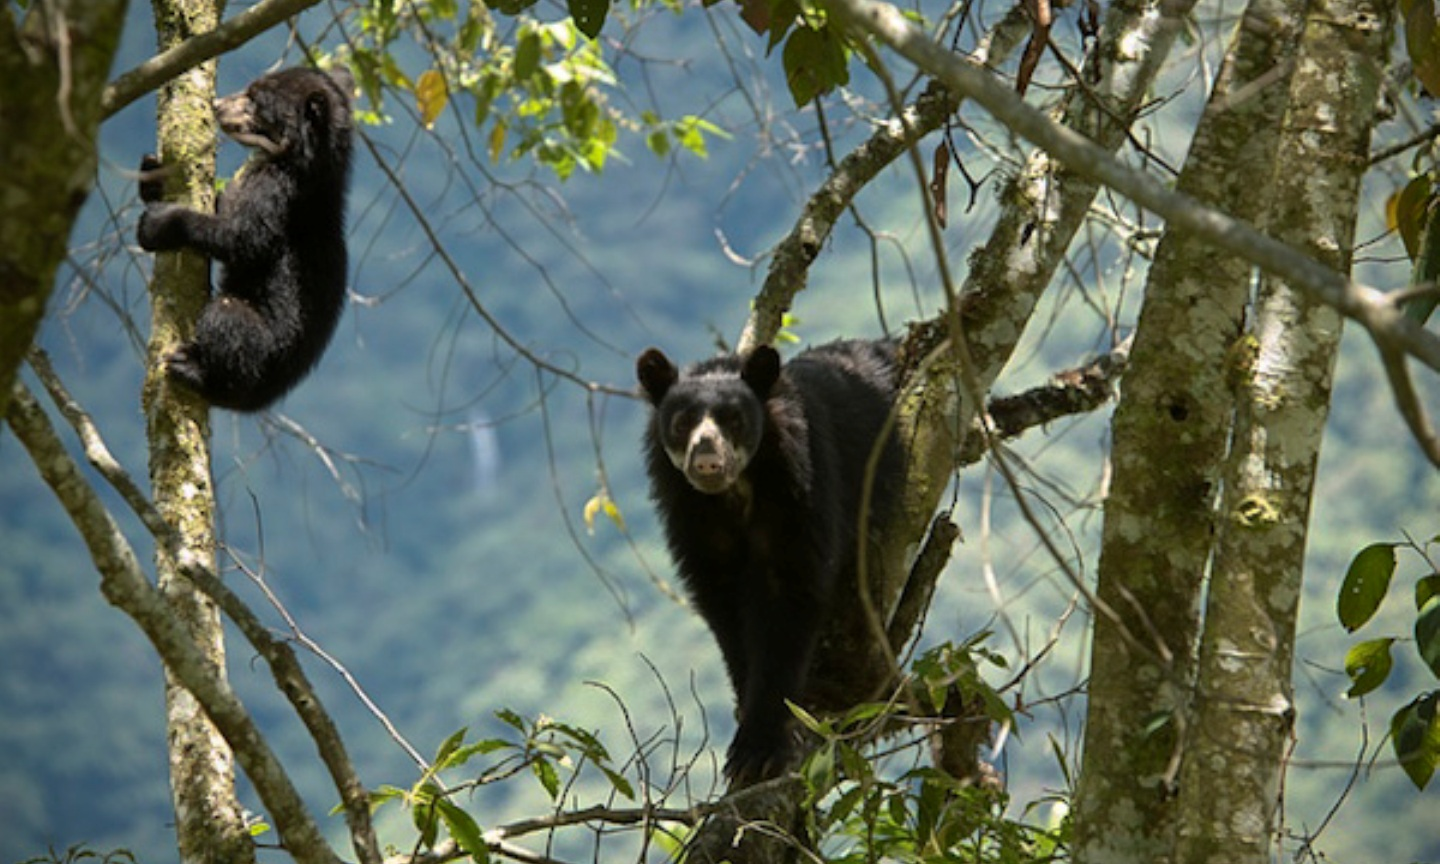 Take Action: Tale of Coffee and Andean Bears